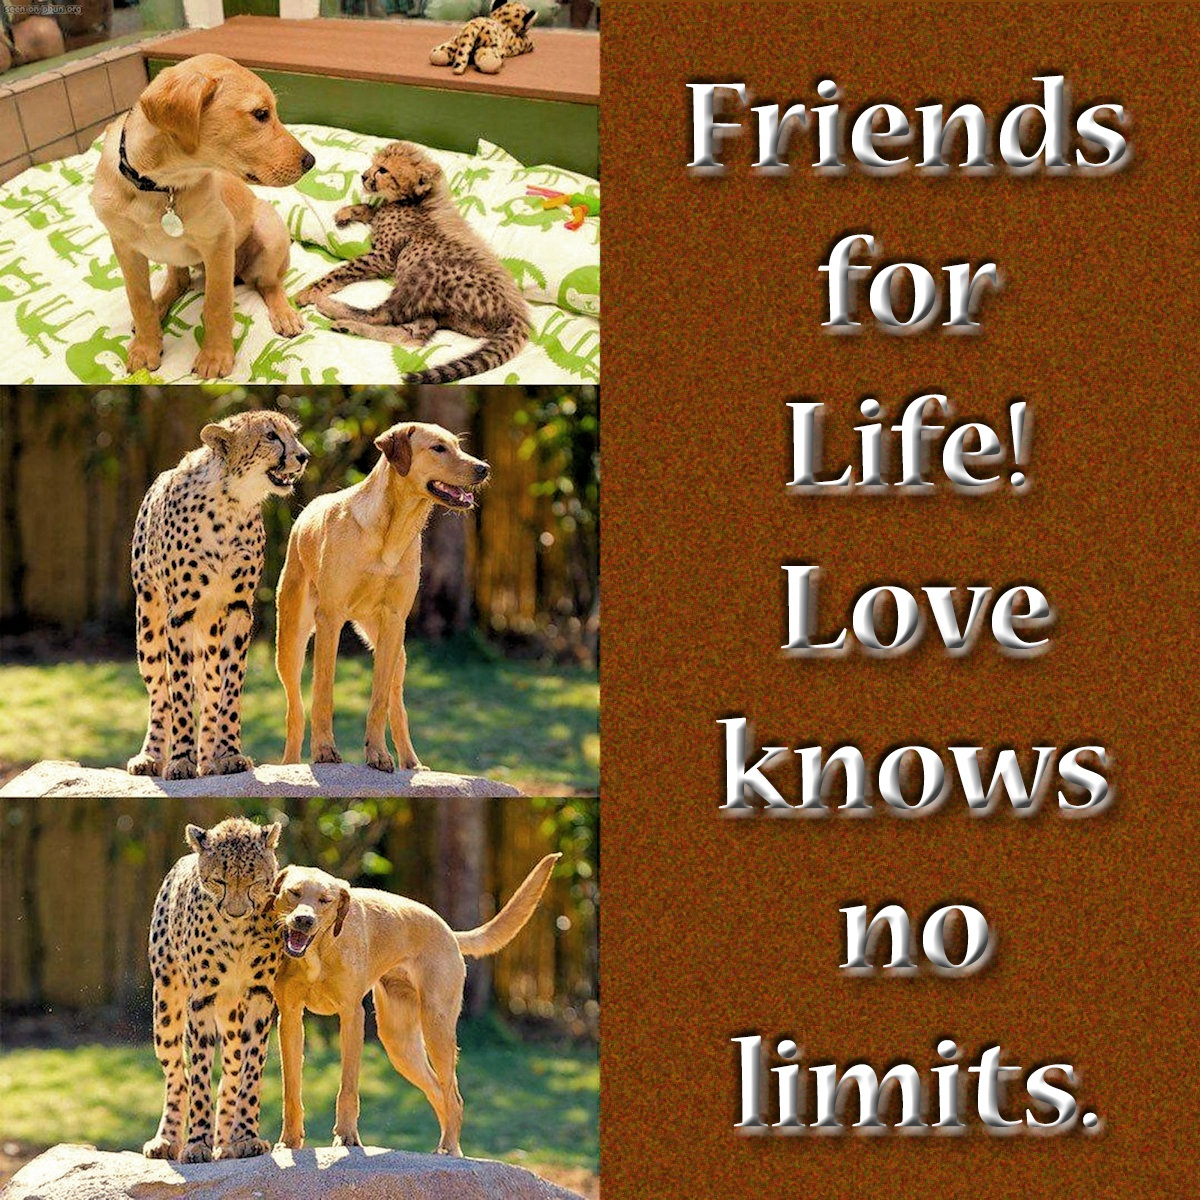 00-dog-and-cheetah-261016